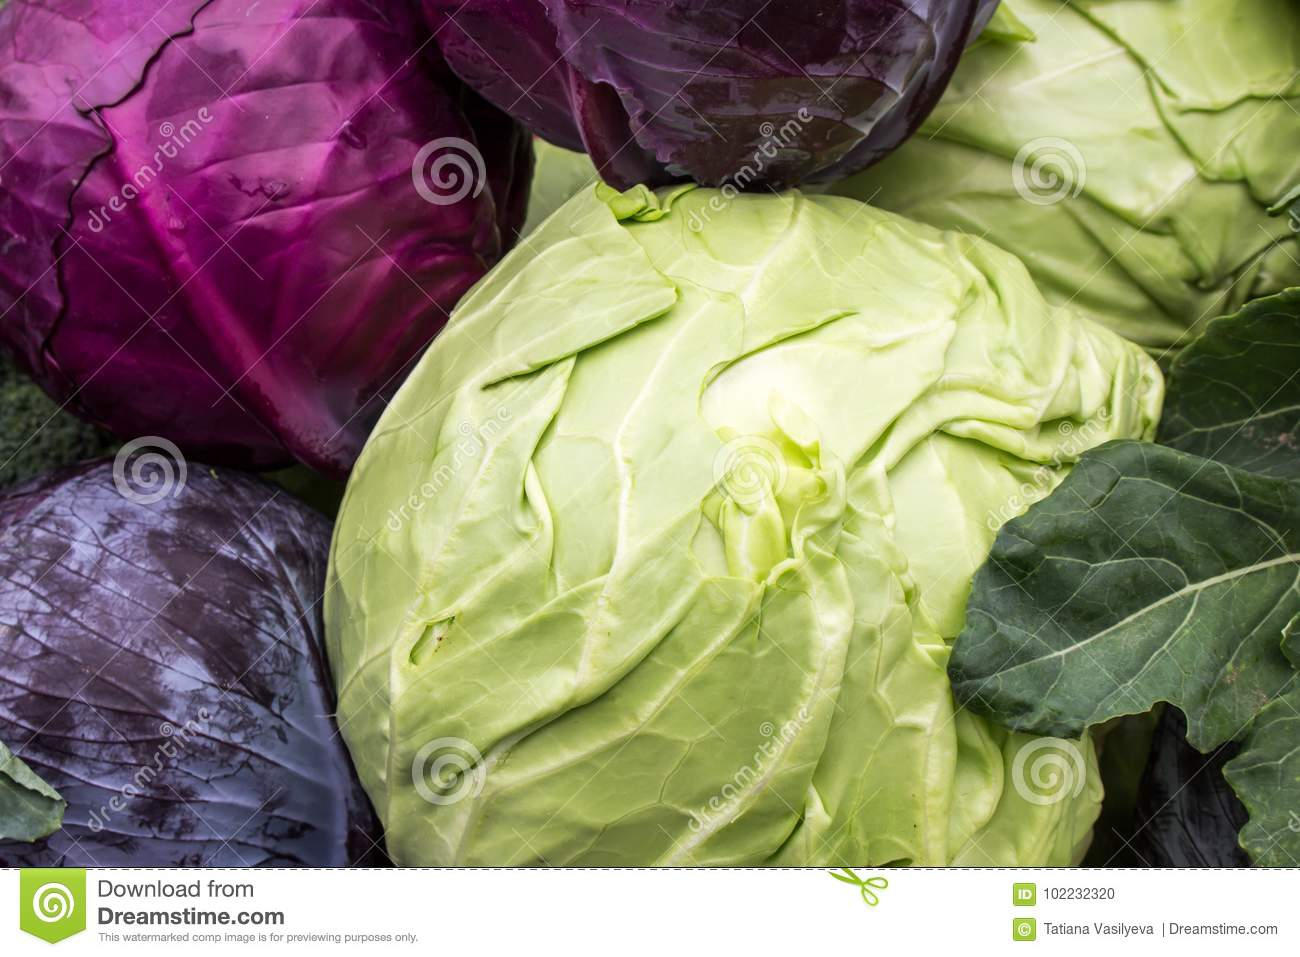 What is useful for cabbage